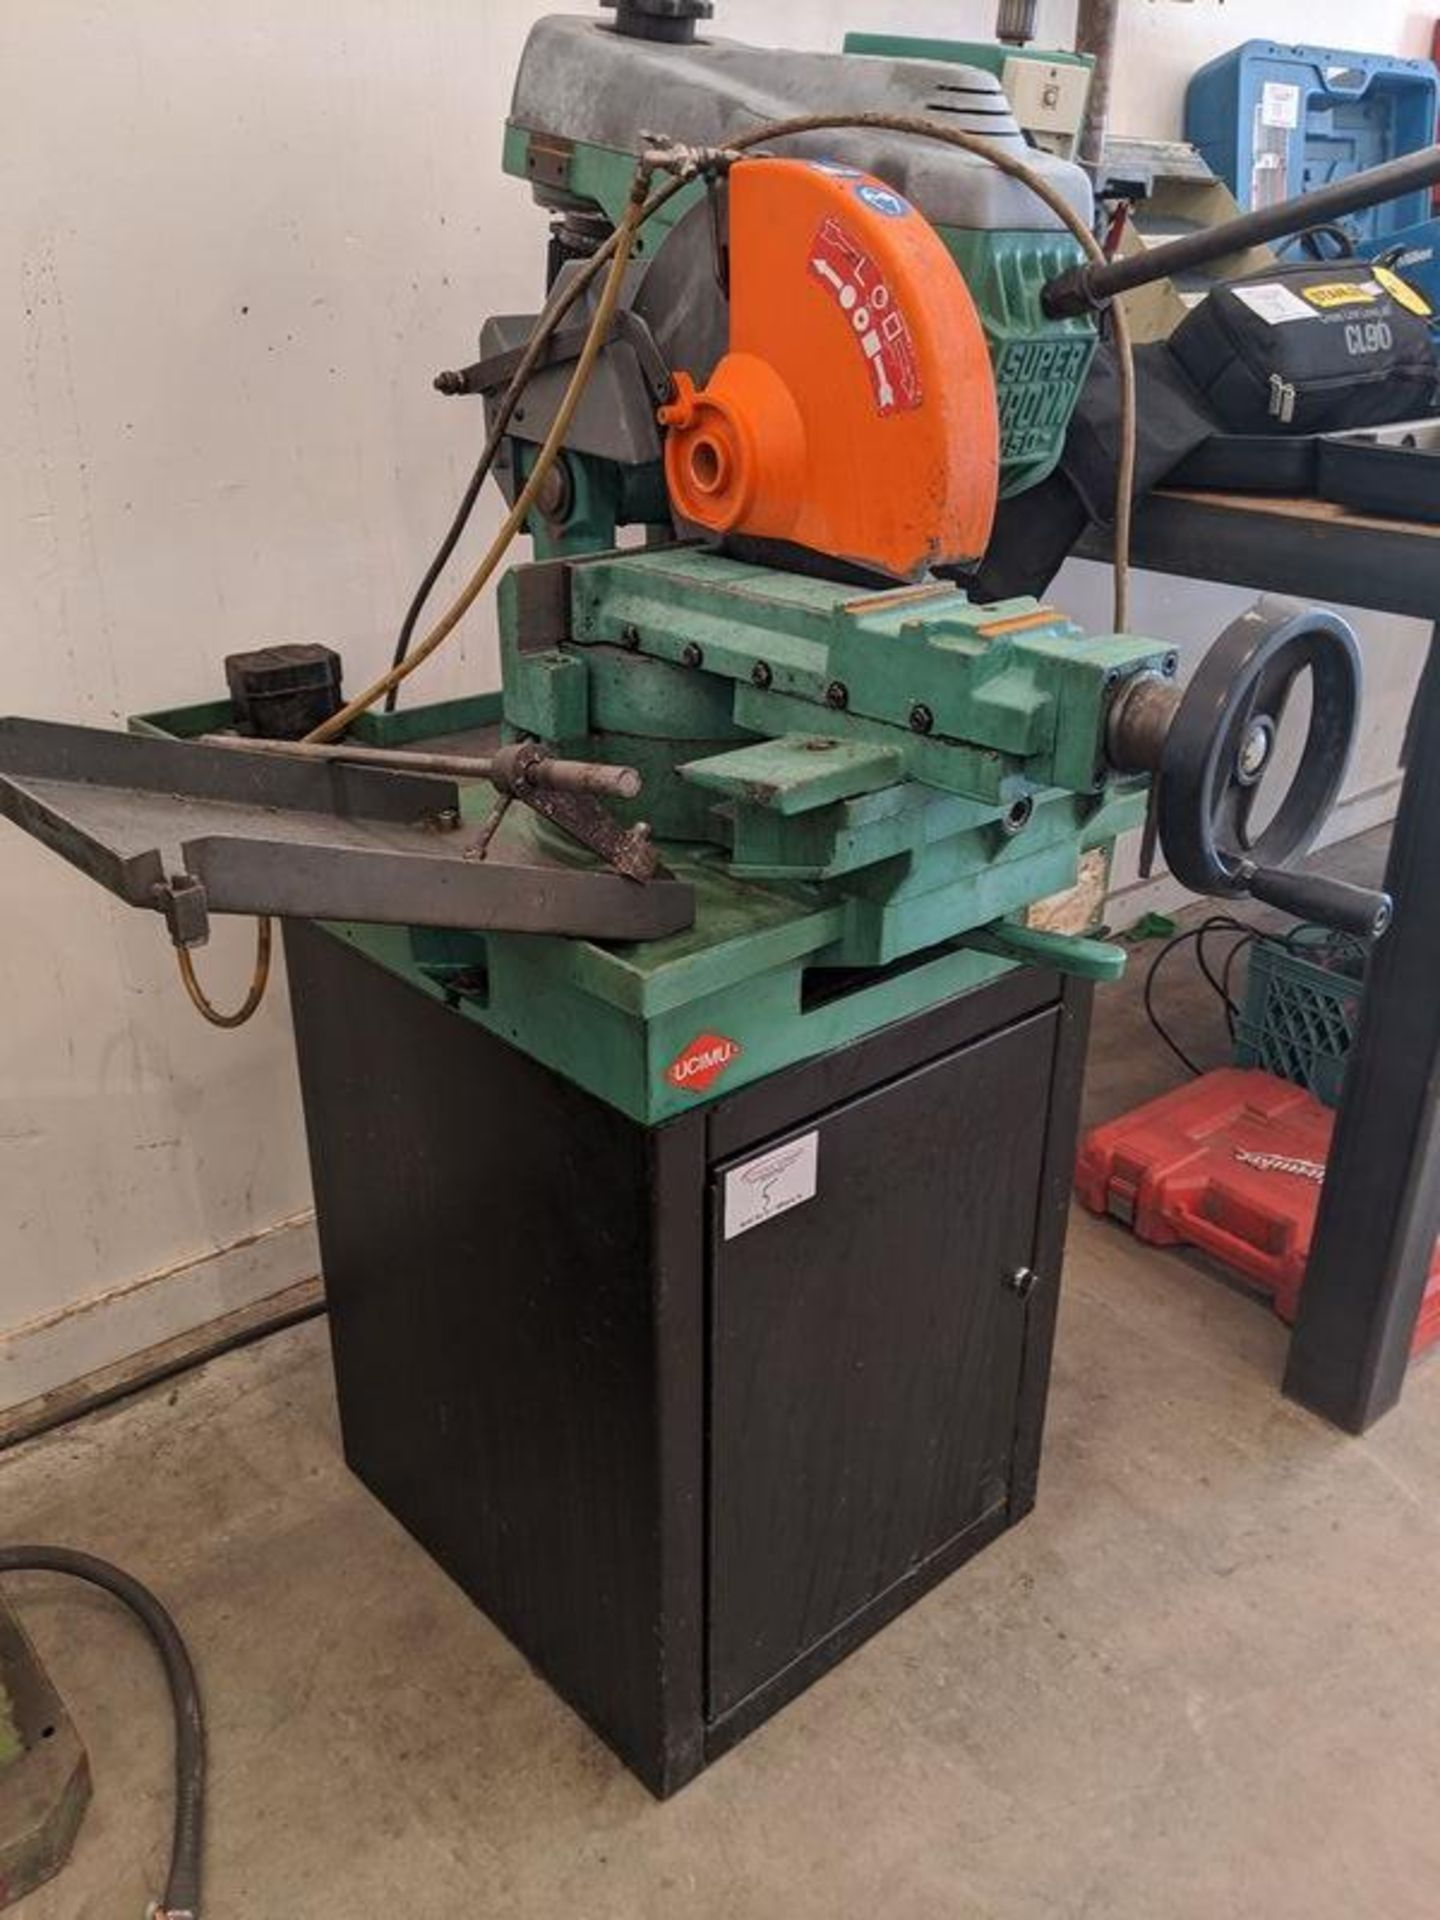 Lot 5 - Super Brown 350 Cut Off Saw